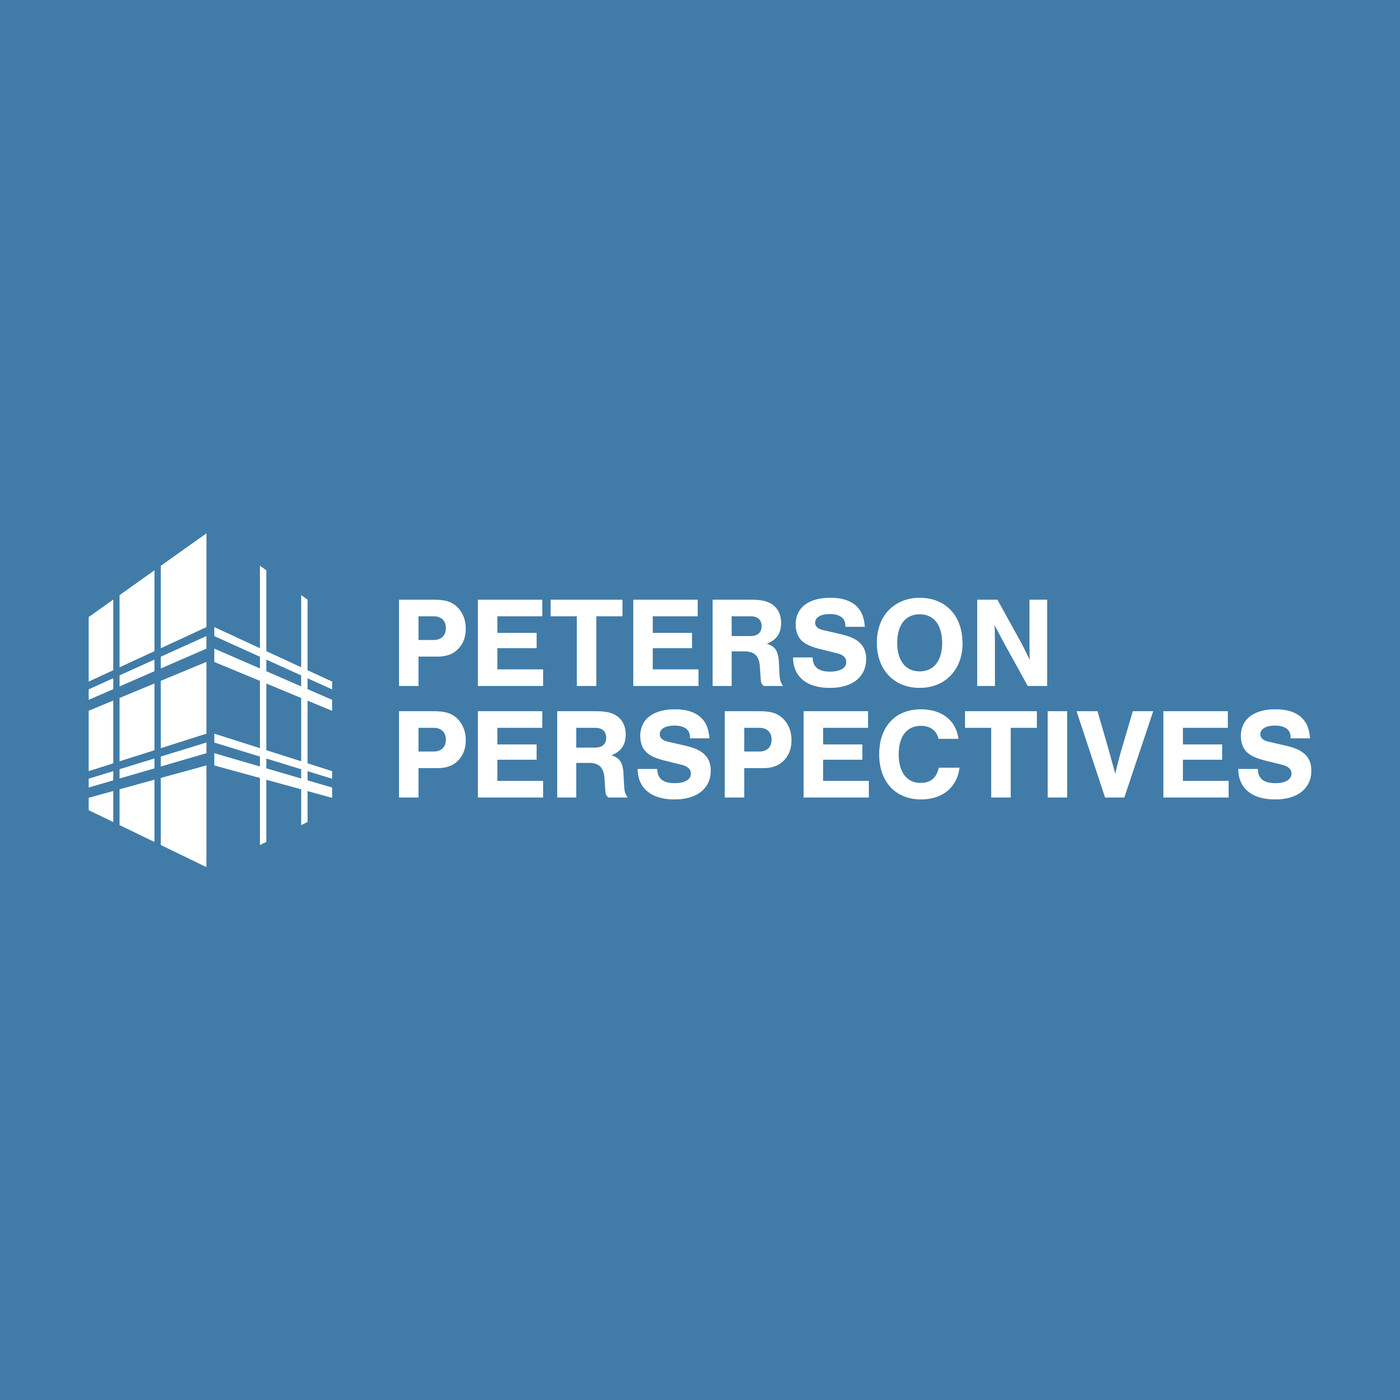 Peterson Perspectives: Interviews on Current Issue